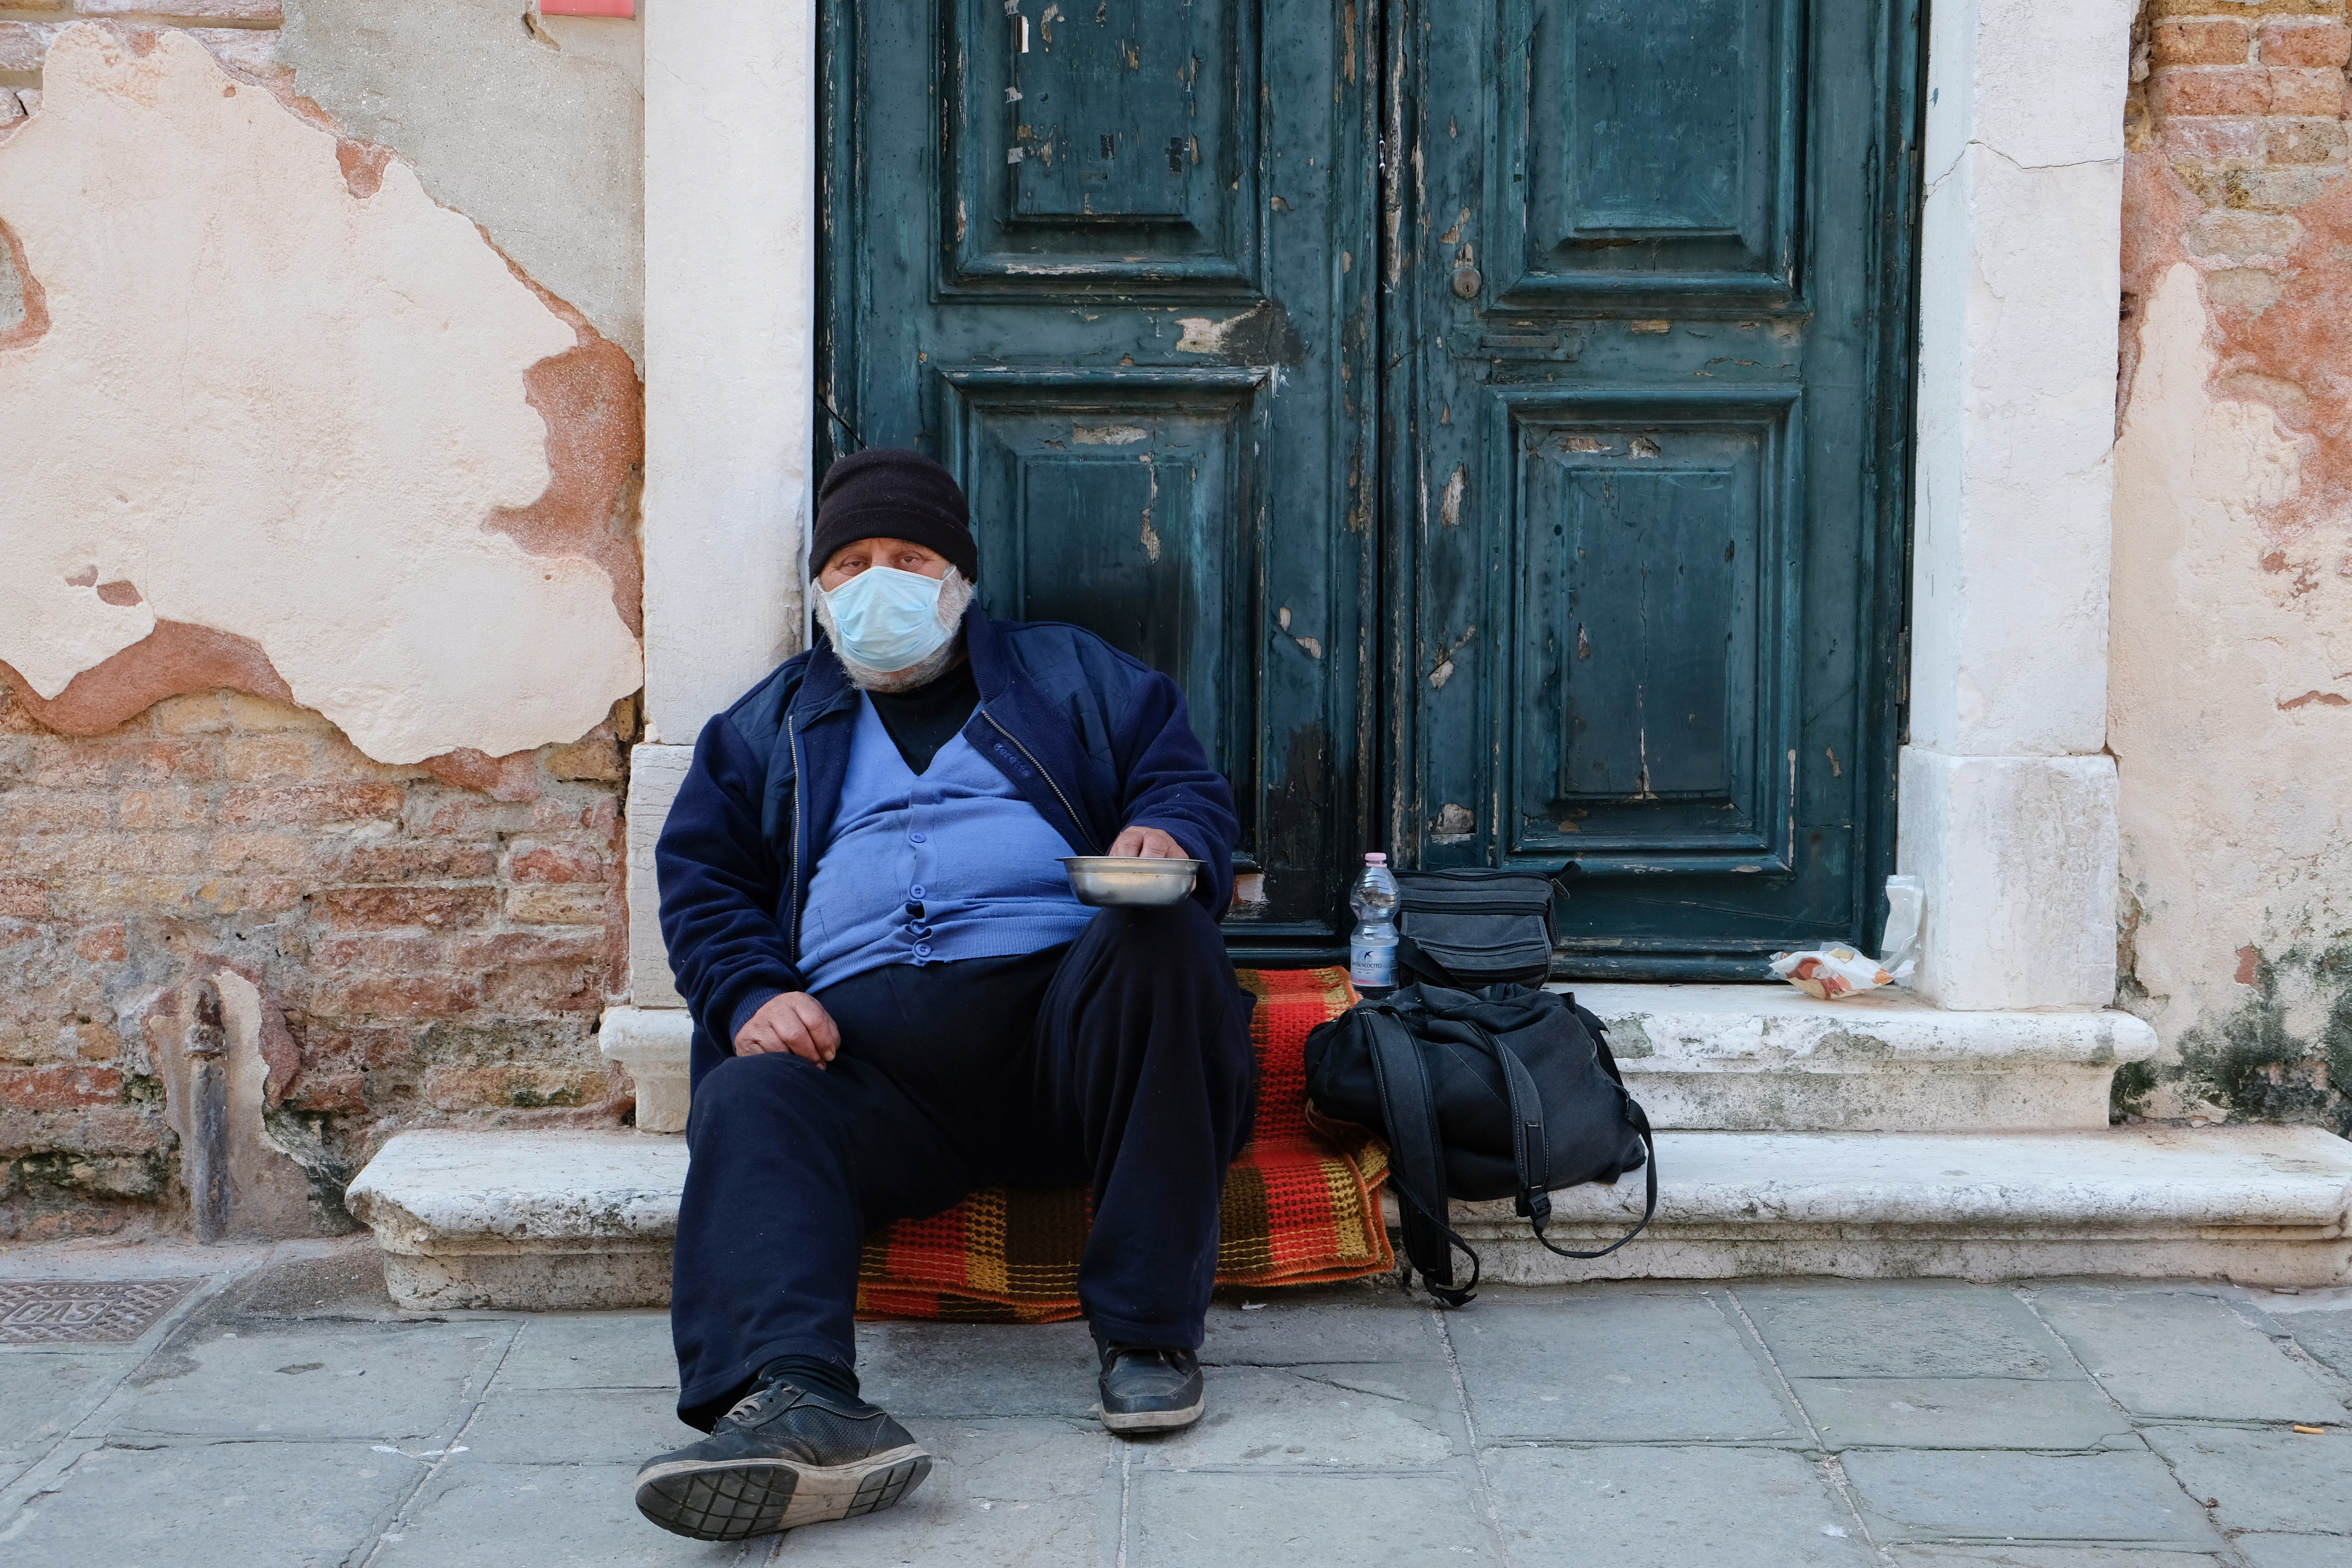 A homeless man wearing a protective mask is seen in Venice as the Italian government allows the reopening of some shops while a nationwide lockdown continues following the outbreak of the coronavirus disease (COVID-19), in Venice, Italy, April 14, 2020.